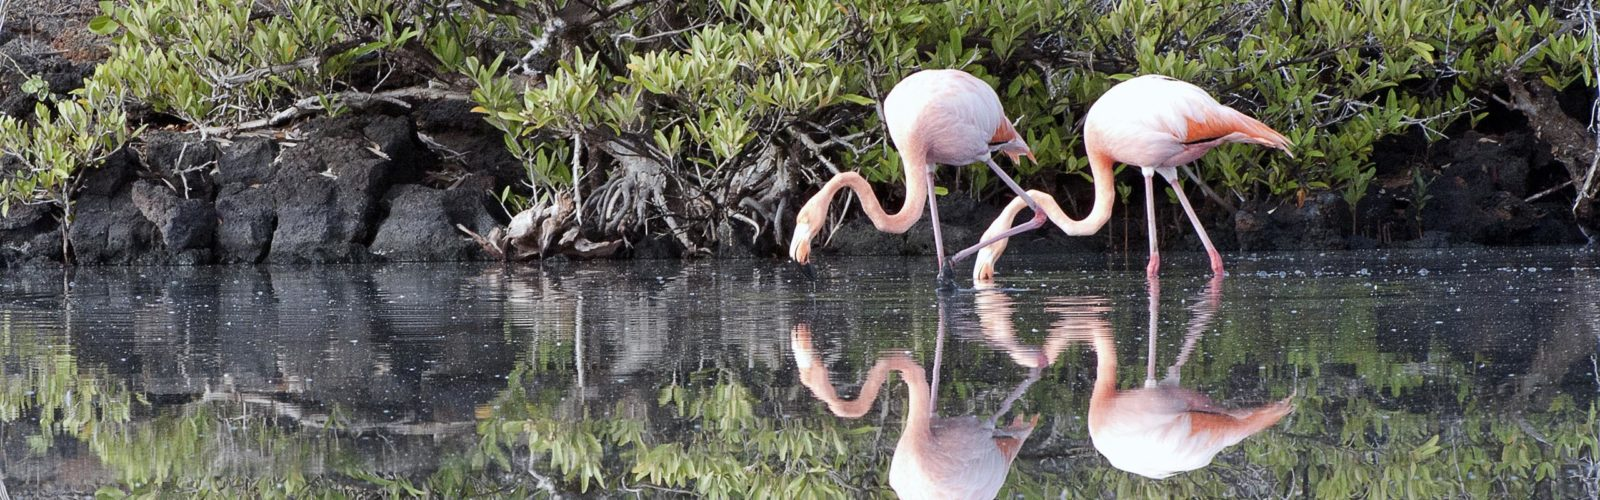 Two Flamingoes in perfect harmony, Galapagos Islands, Ecuador